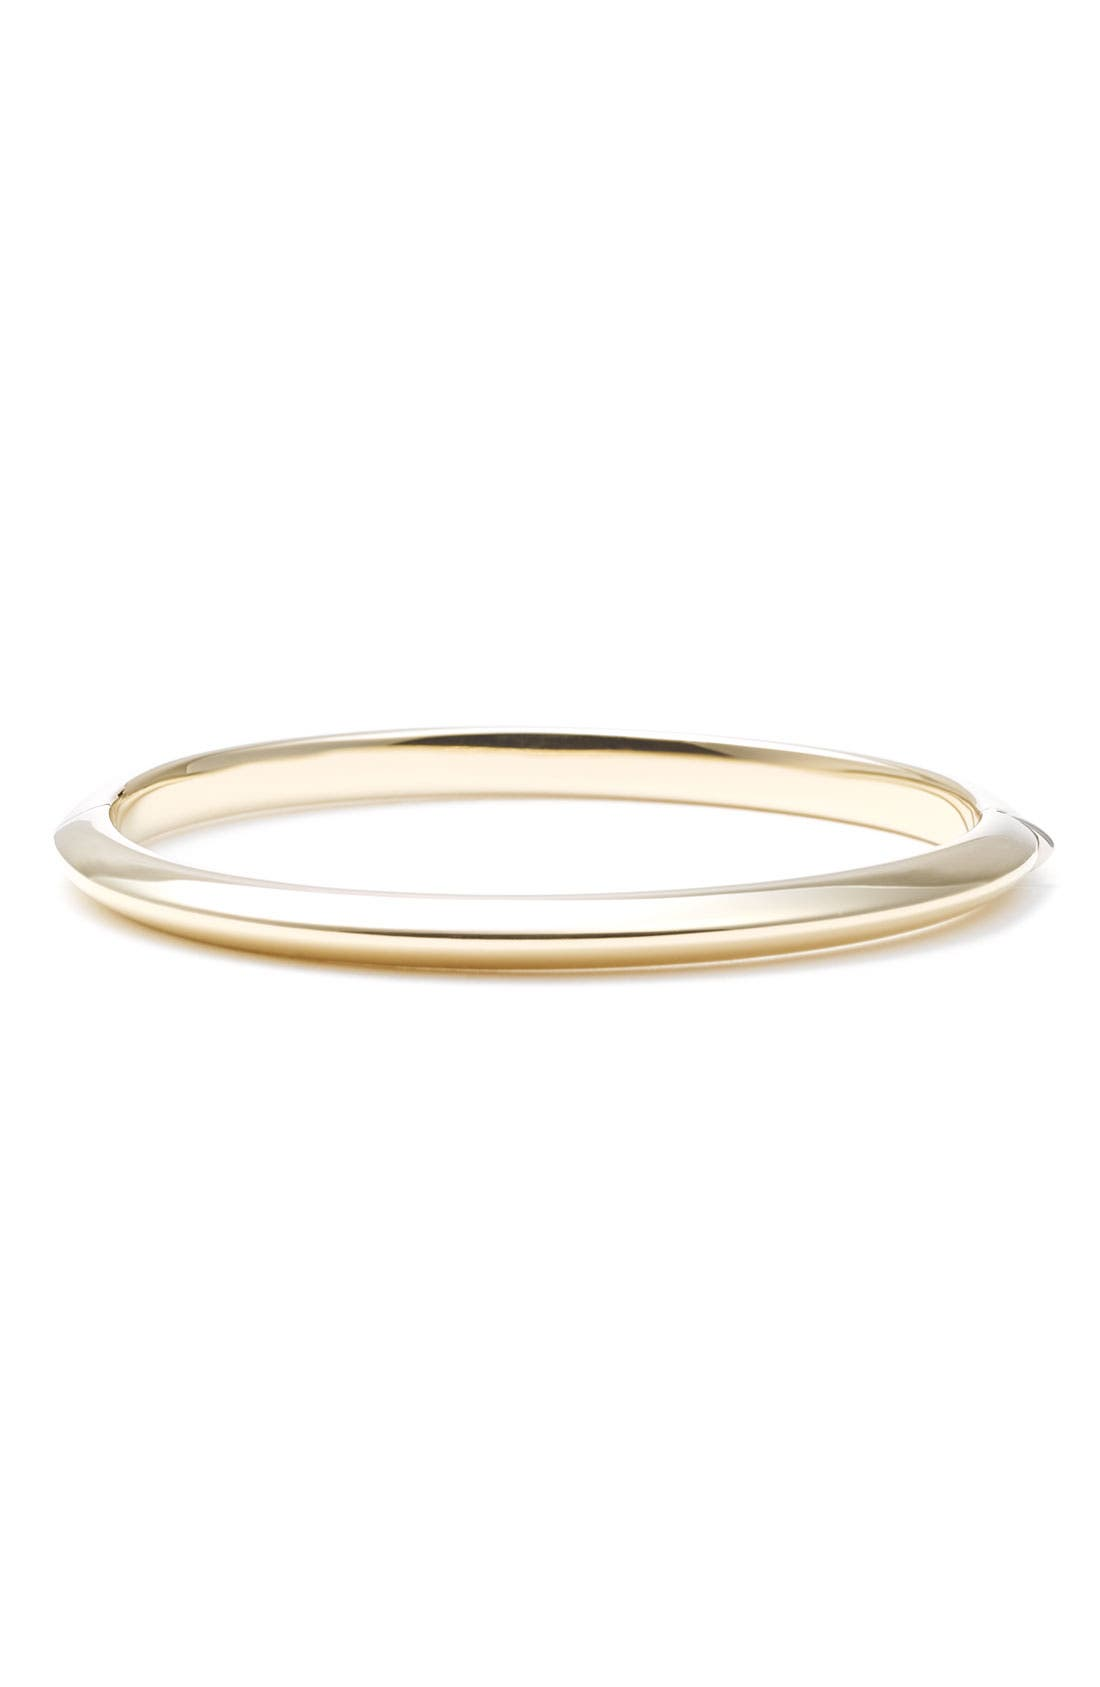 'Knife Edge' Gold Bangle,                         Main,                         color, 700